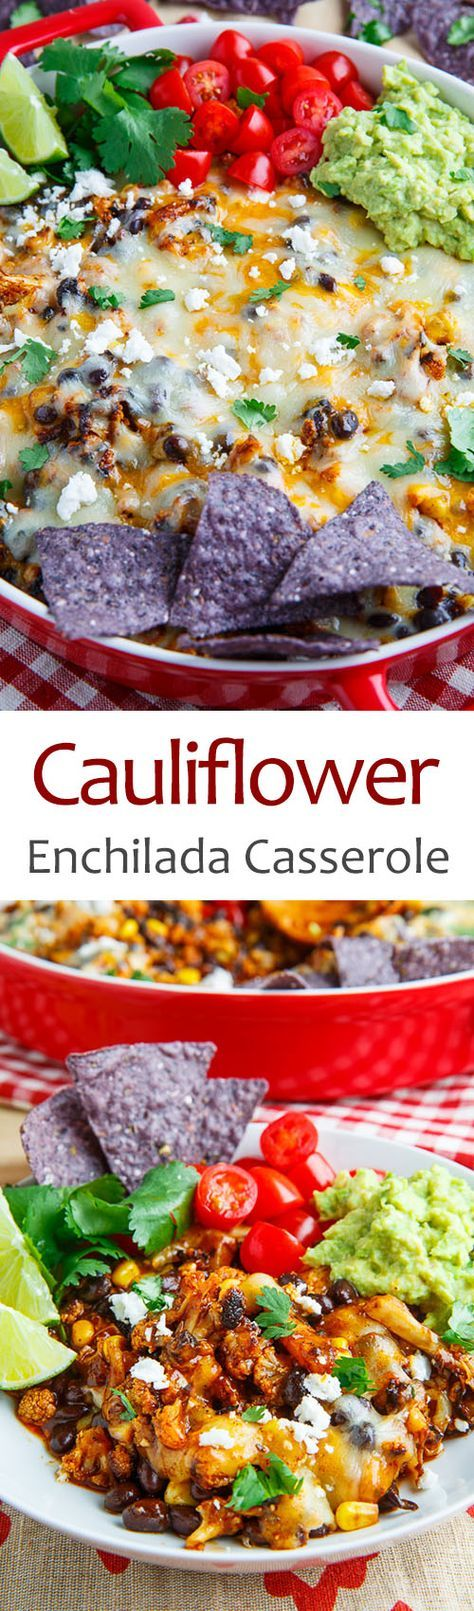 Cauliflower Enchilada Casserole                                                                                                                                                     More